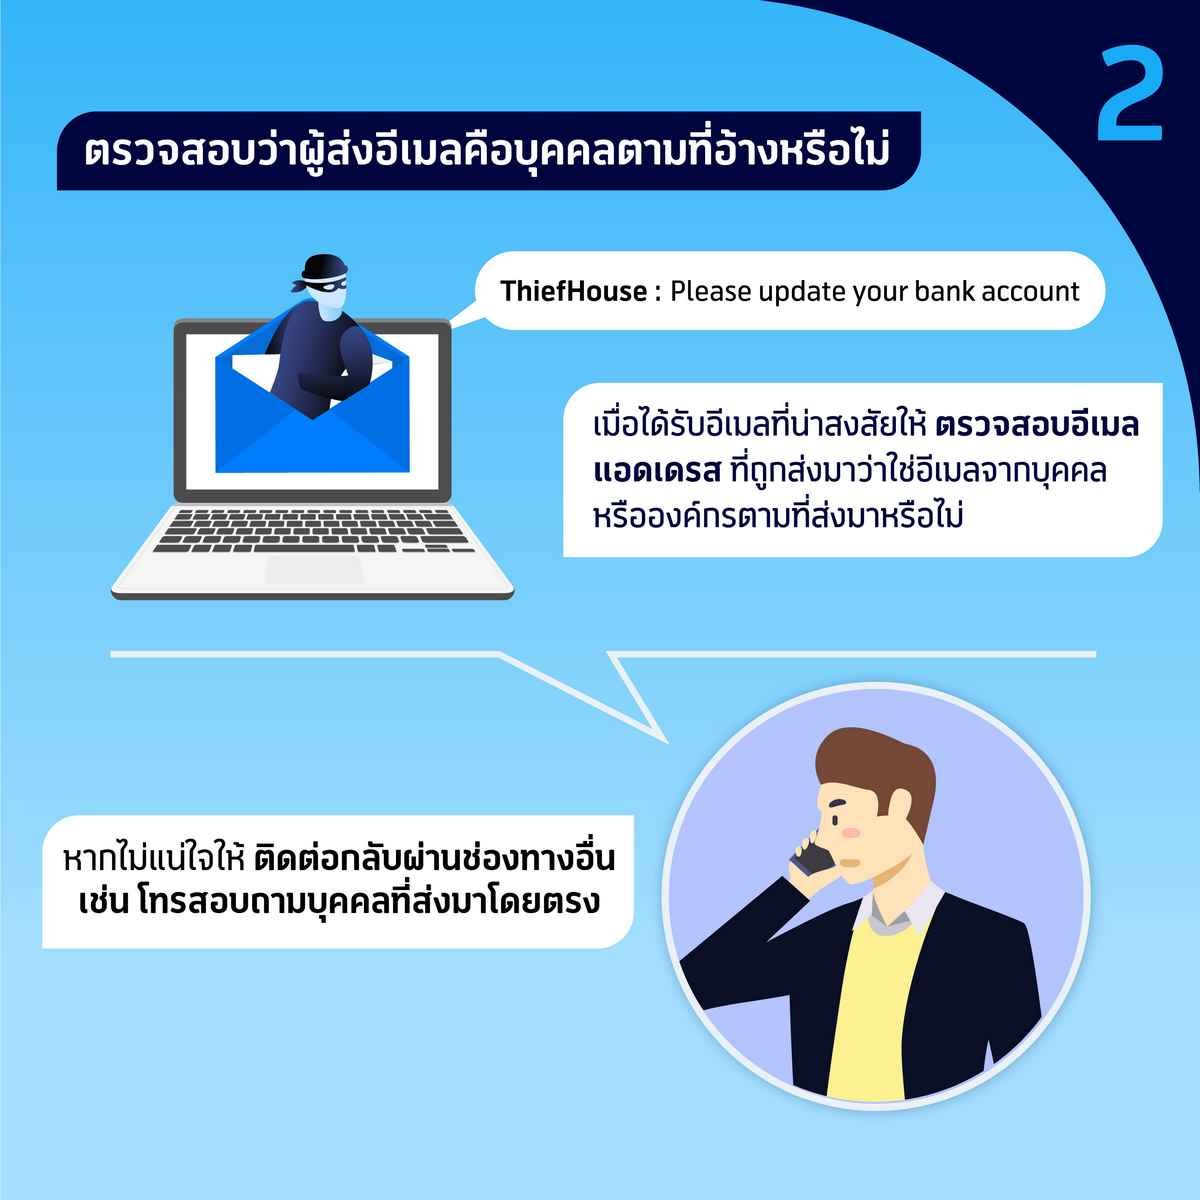 Here are seven tips from the security experts at dtac to help you stay safe.